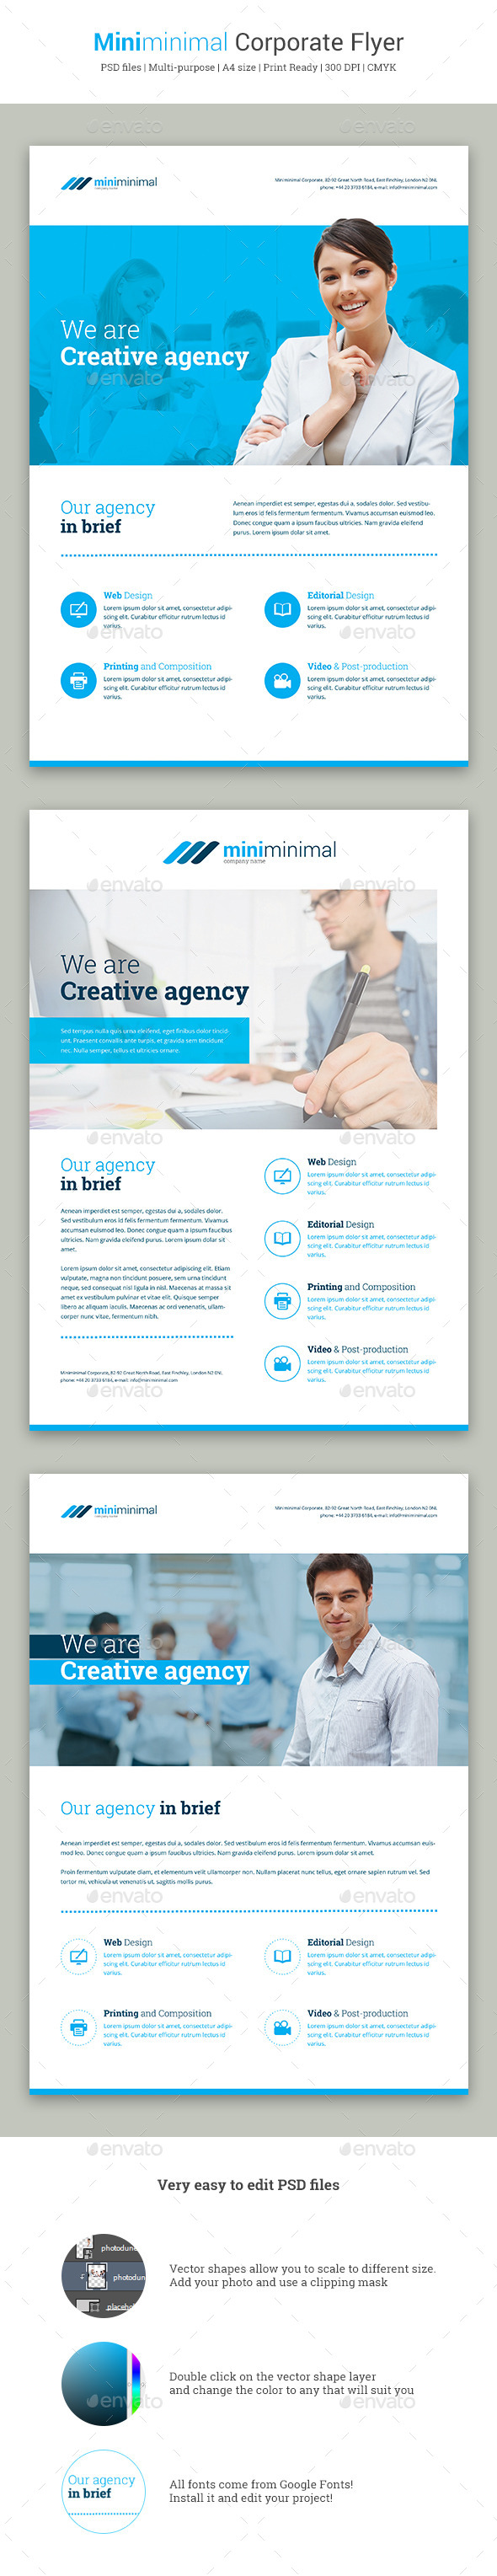 GraphicRiver Miniminimal Corporate Flyer 11369136